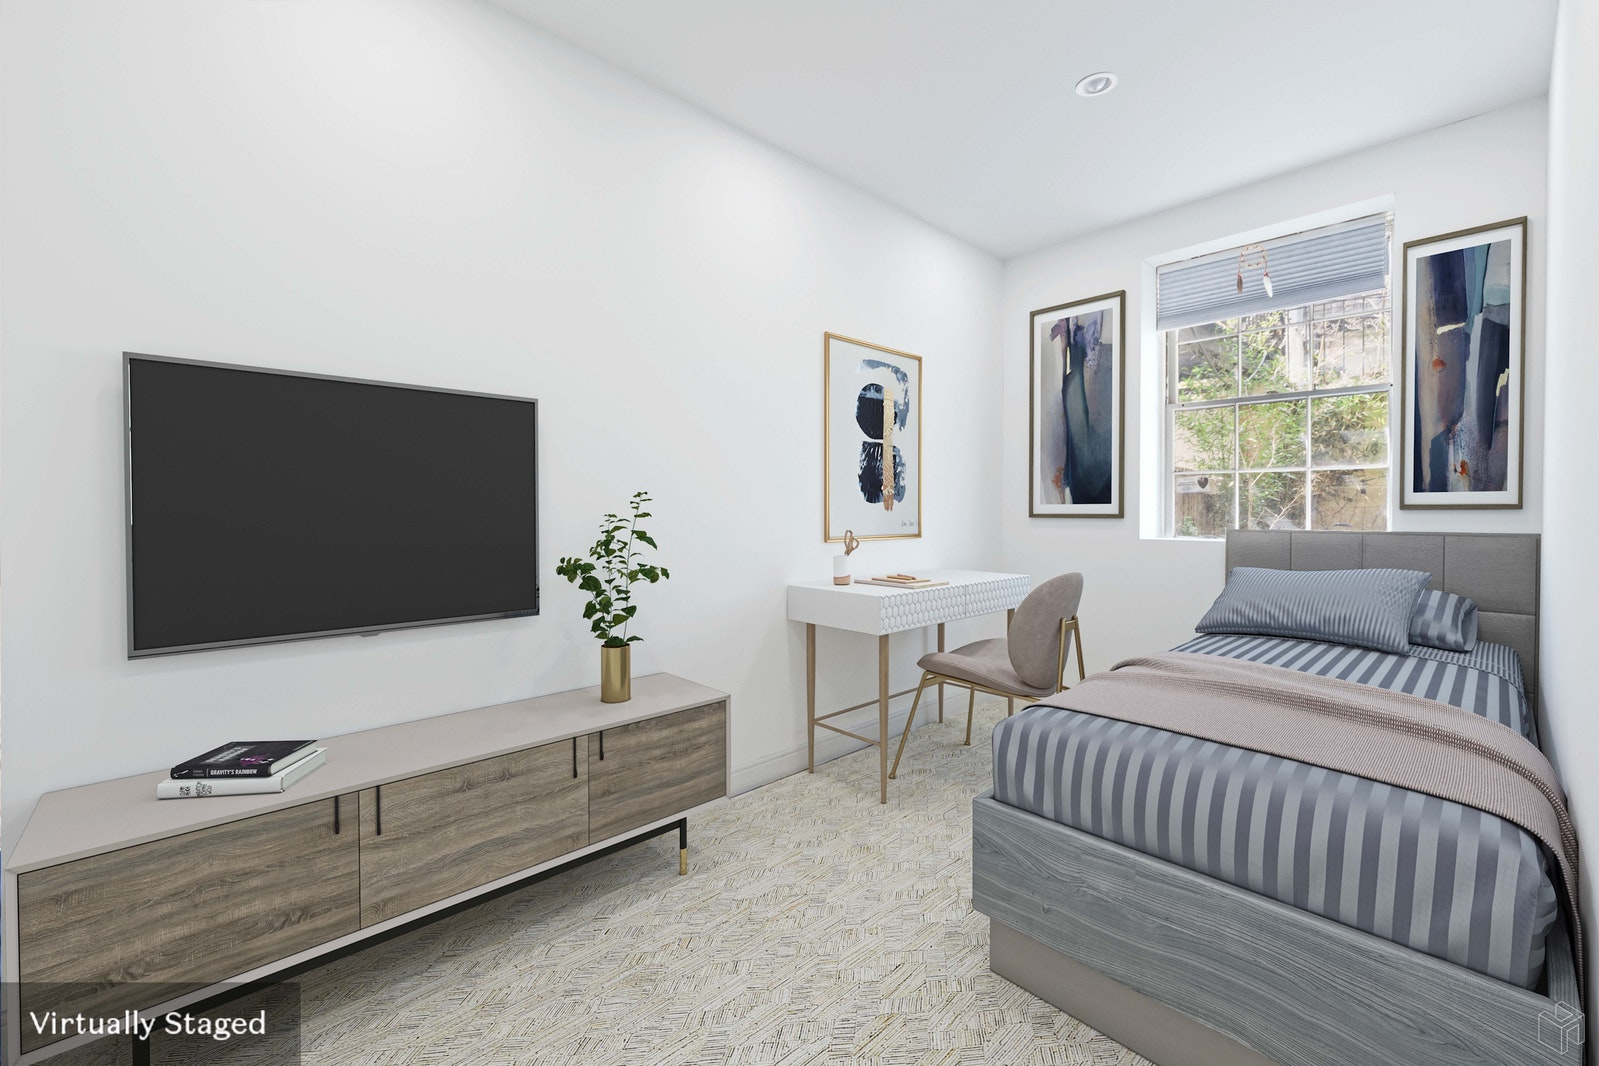 460 West 23rd Street Gb, Chelsea, NYC, 10011, $745,000, Sold Property, Halstead Real Estate, Photo 2